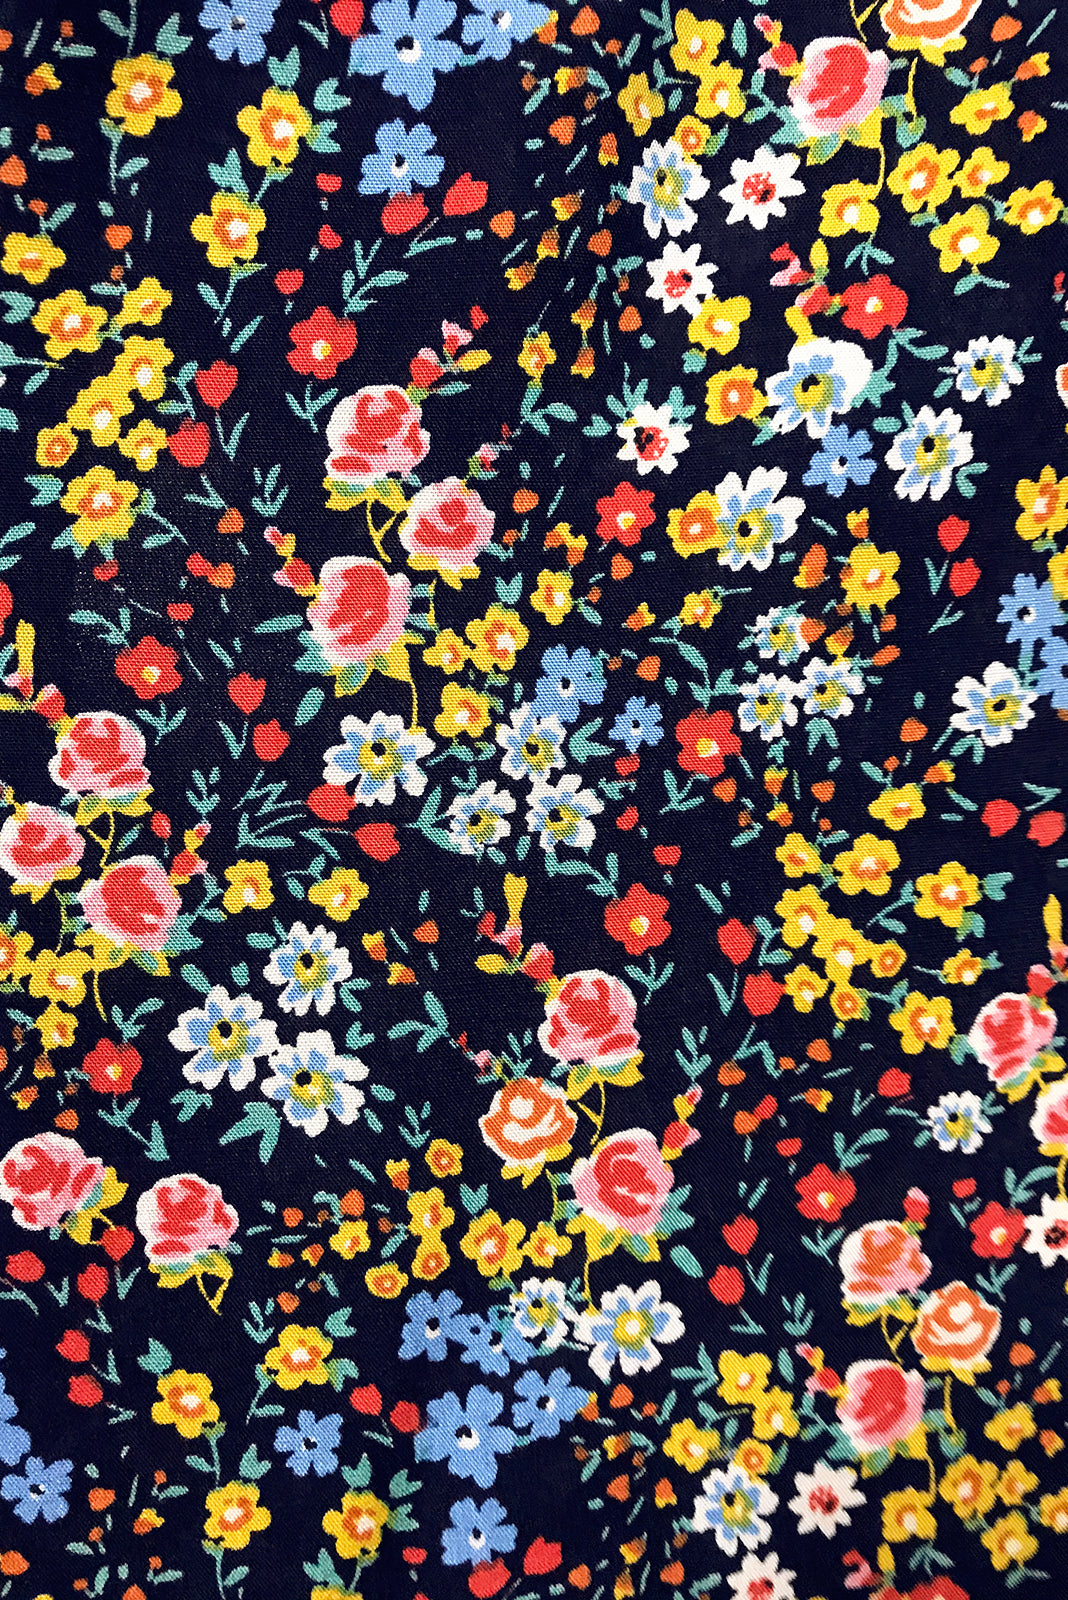 Fabric swatch of Maggie May Ink Picnic Dress featuring 100% rayon in ink base with small, colourful floral print.